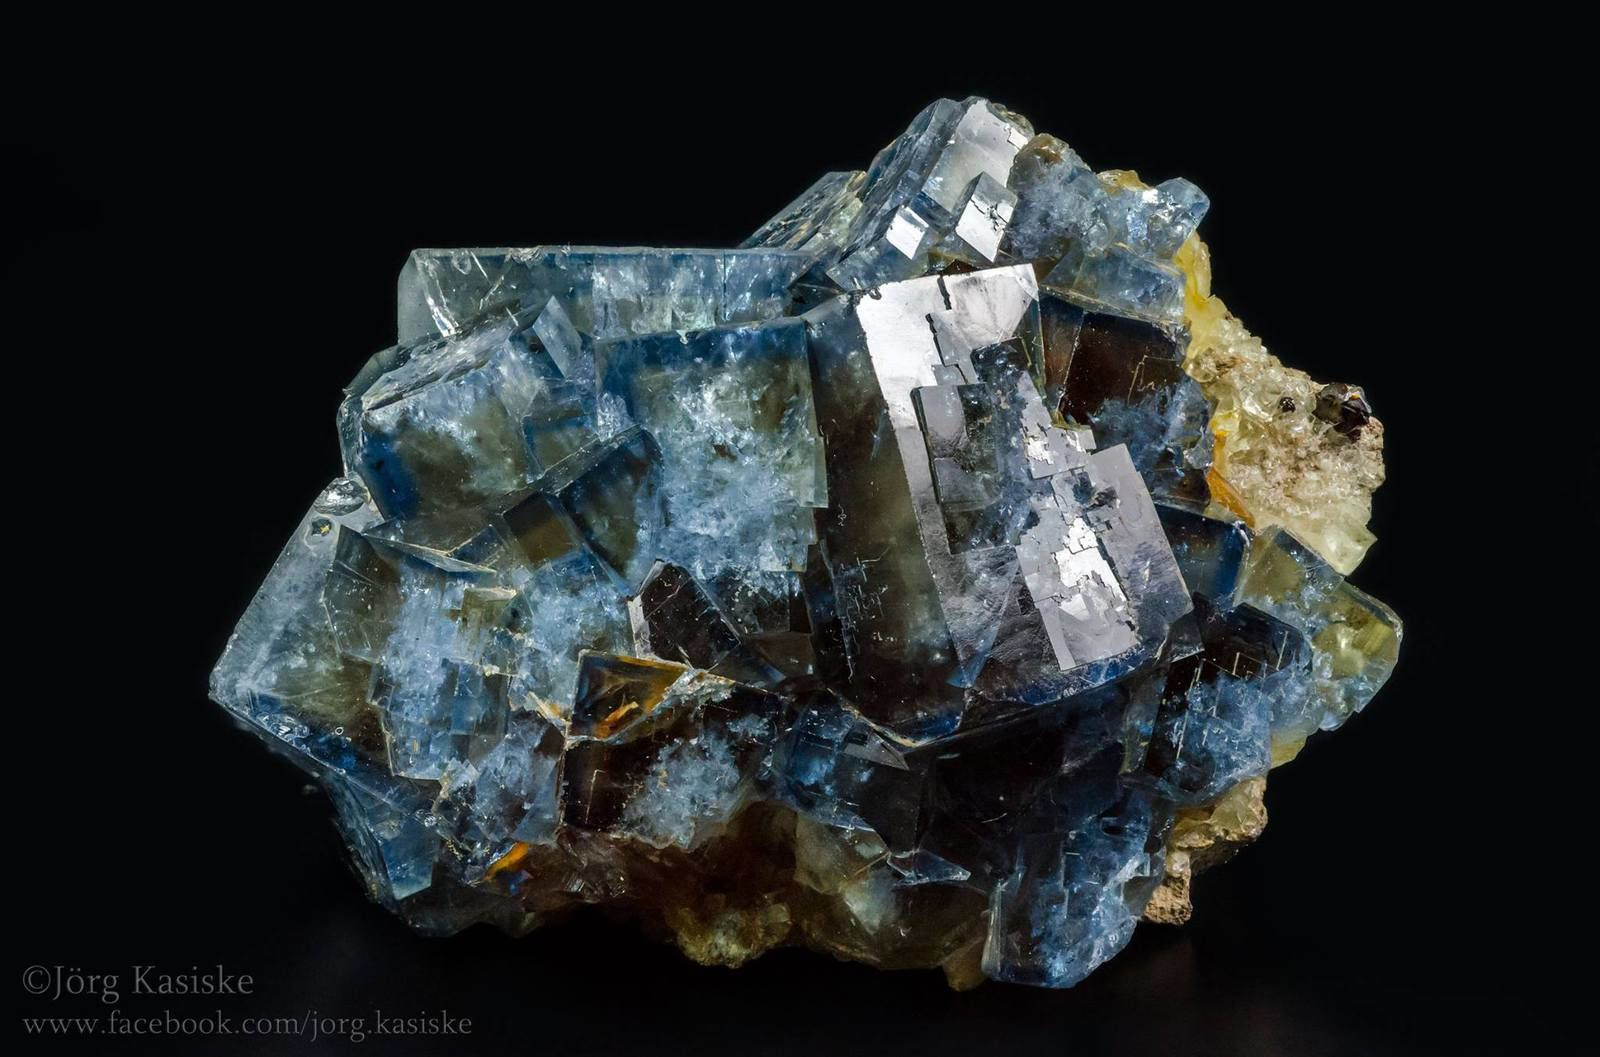 Blue Fluorite from Saxon, Germany (Specimen and Photo by Jörg Kasiske)